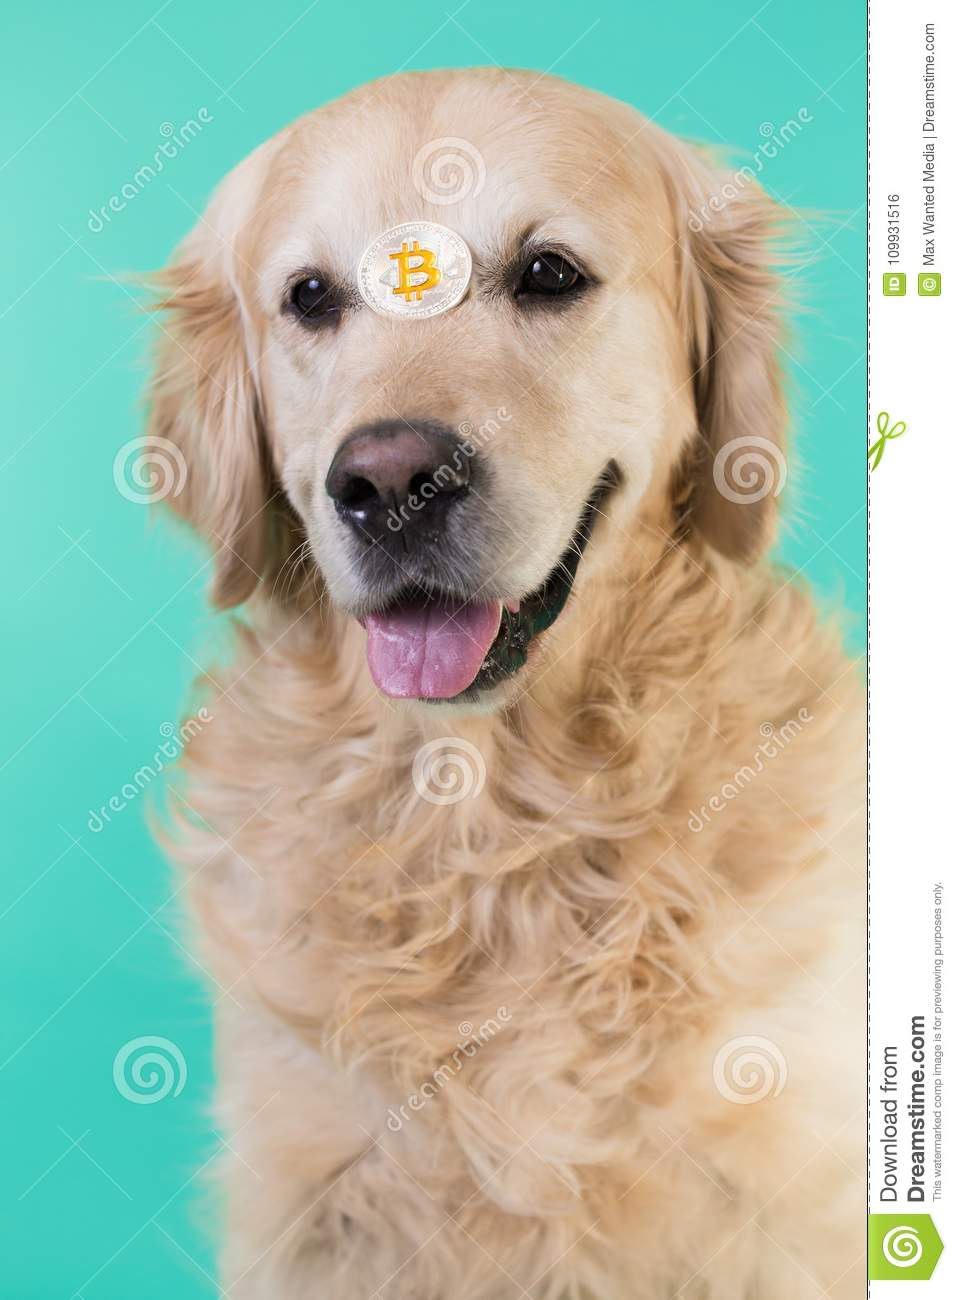 Bitcoins pictures of dogs cardiff vs nottingham bettingexpert football